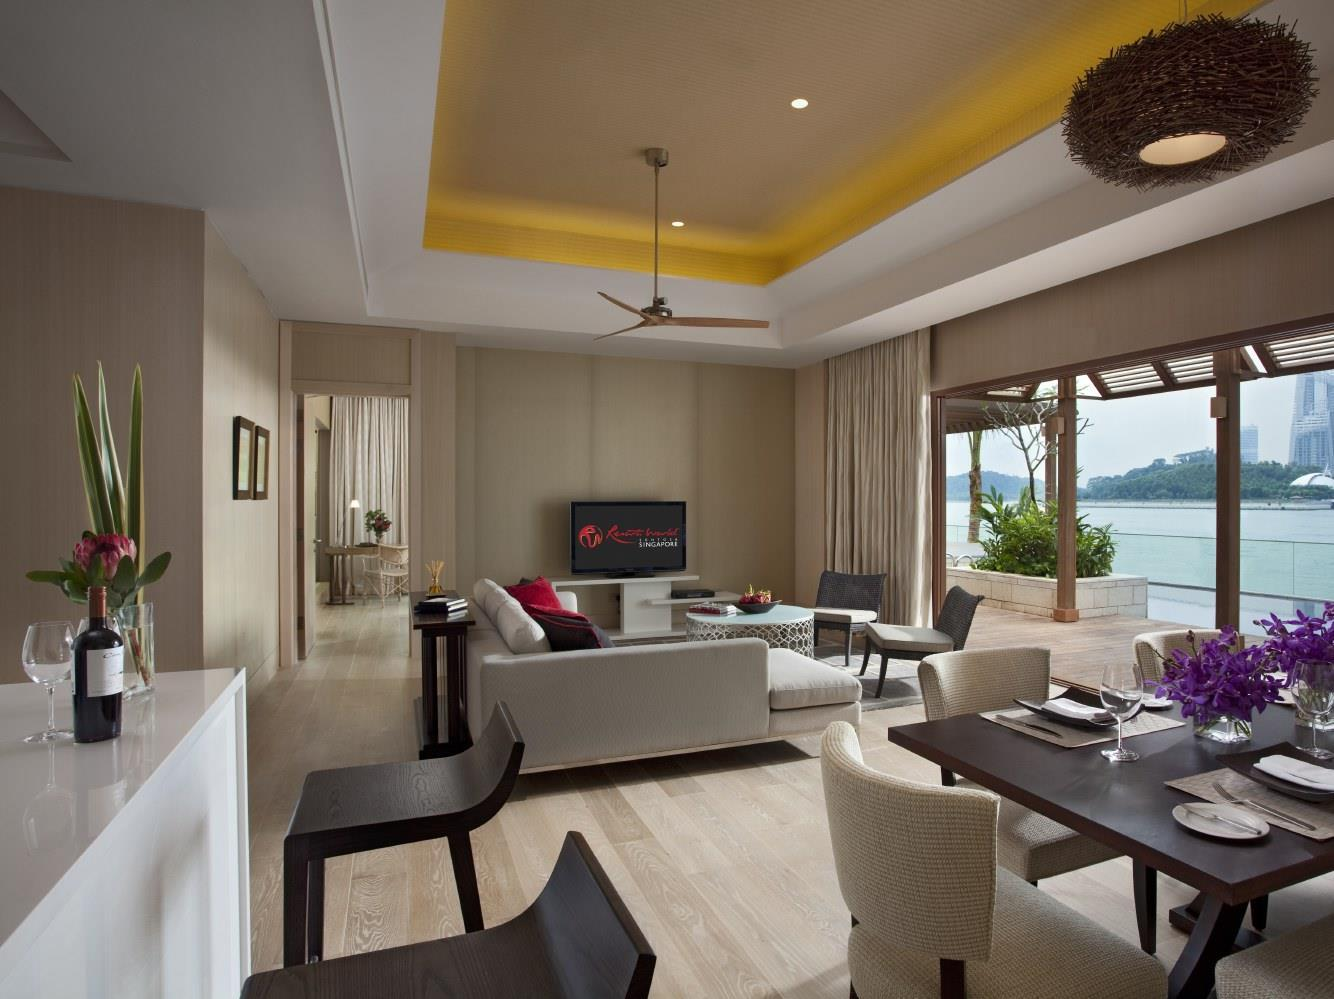 Resorts World Sentosa - Beach Villas43